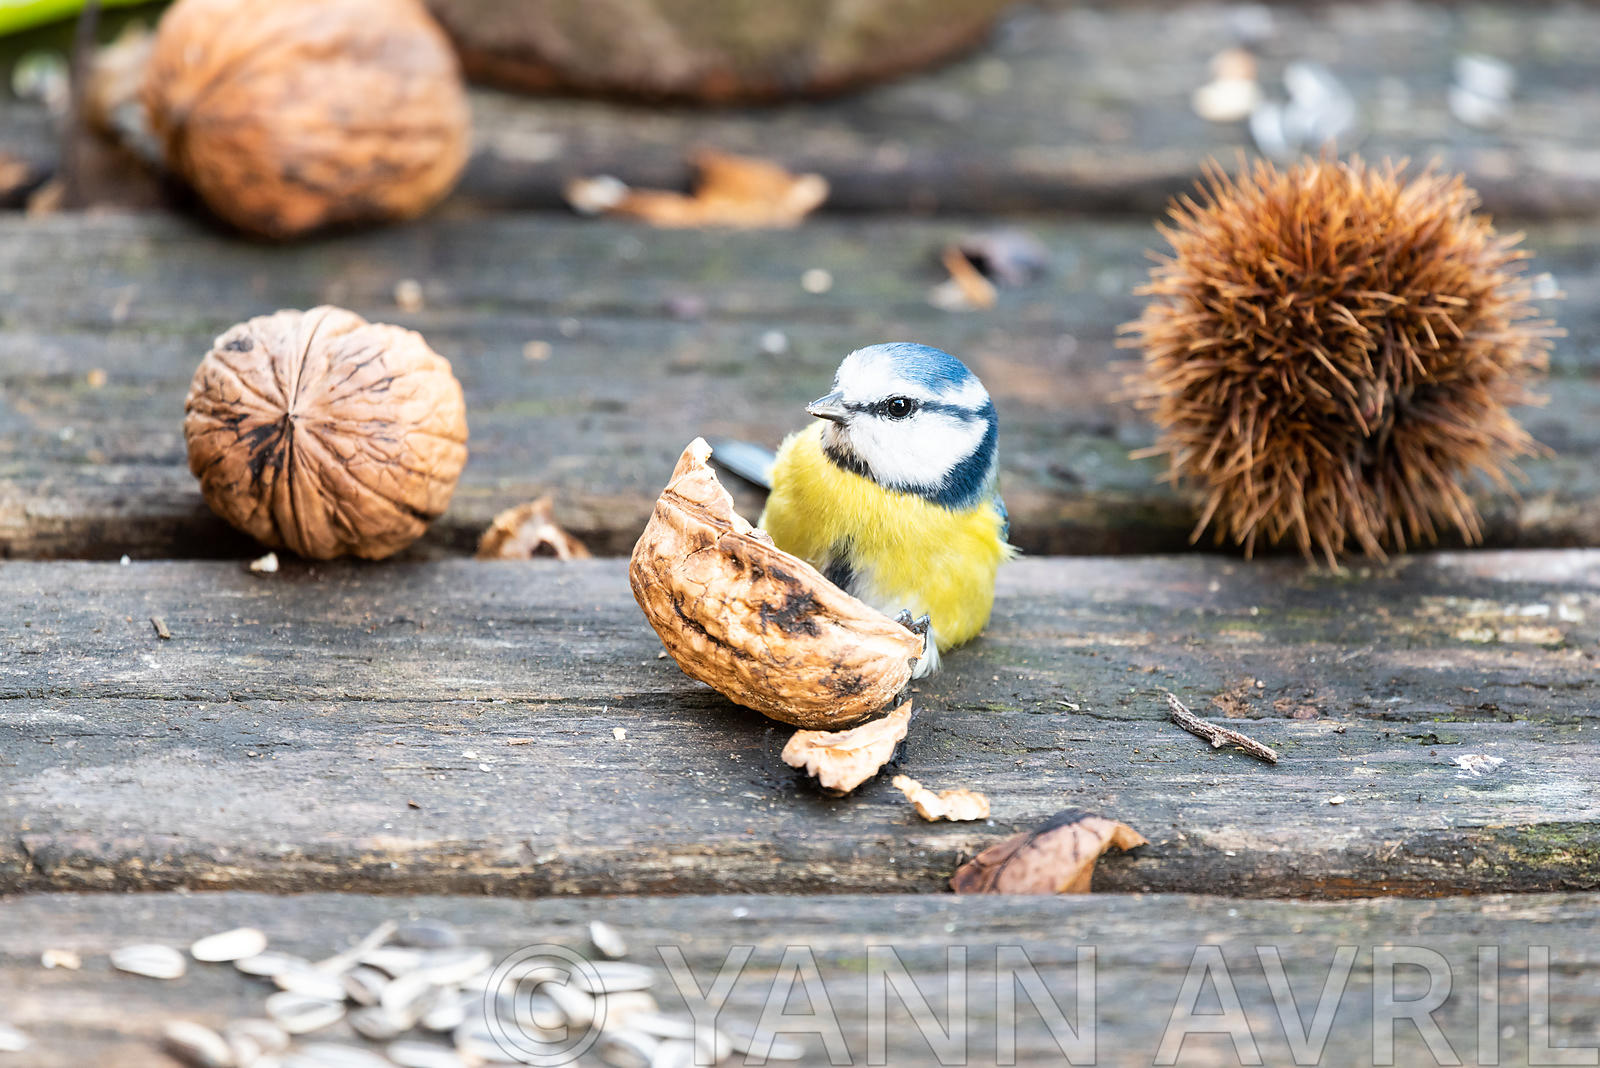 Blue tit eating nuts  on a wooden table, France, autumn